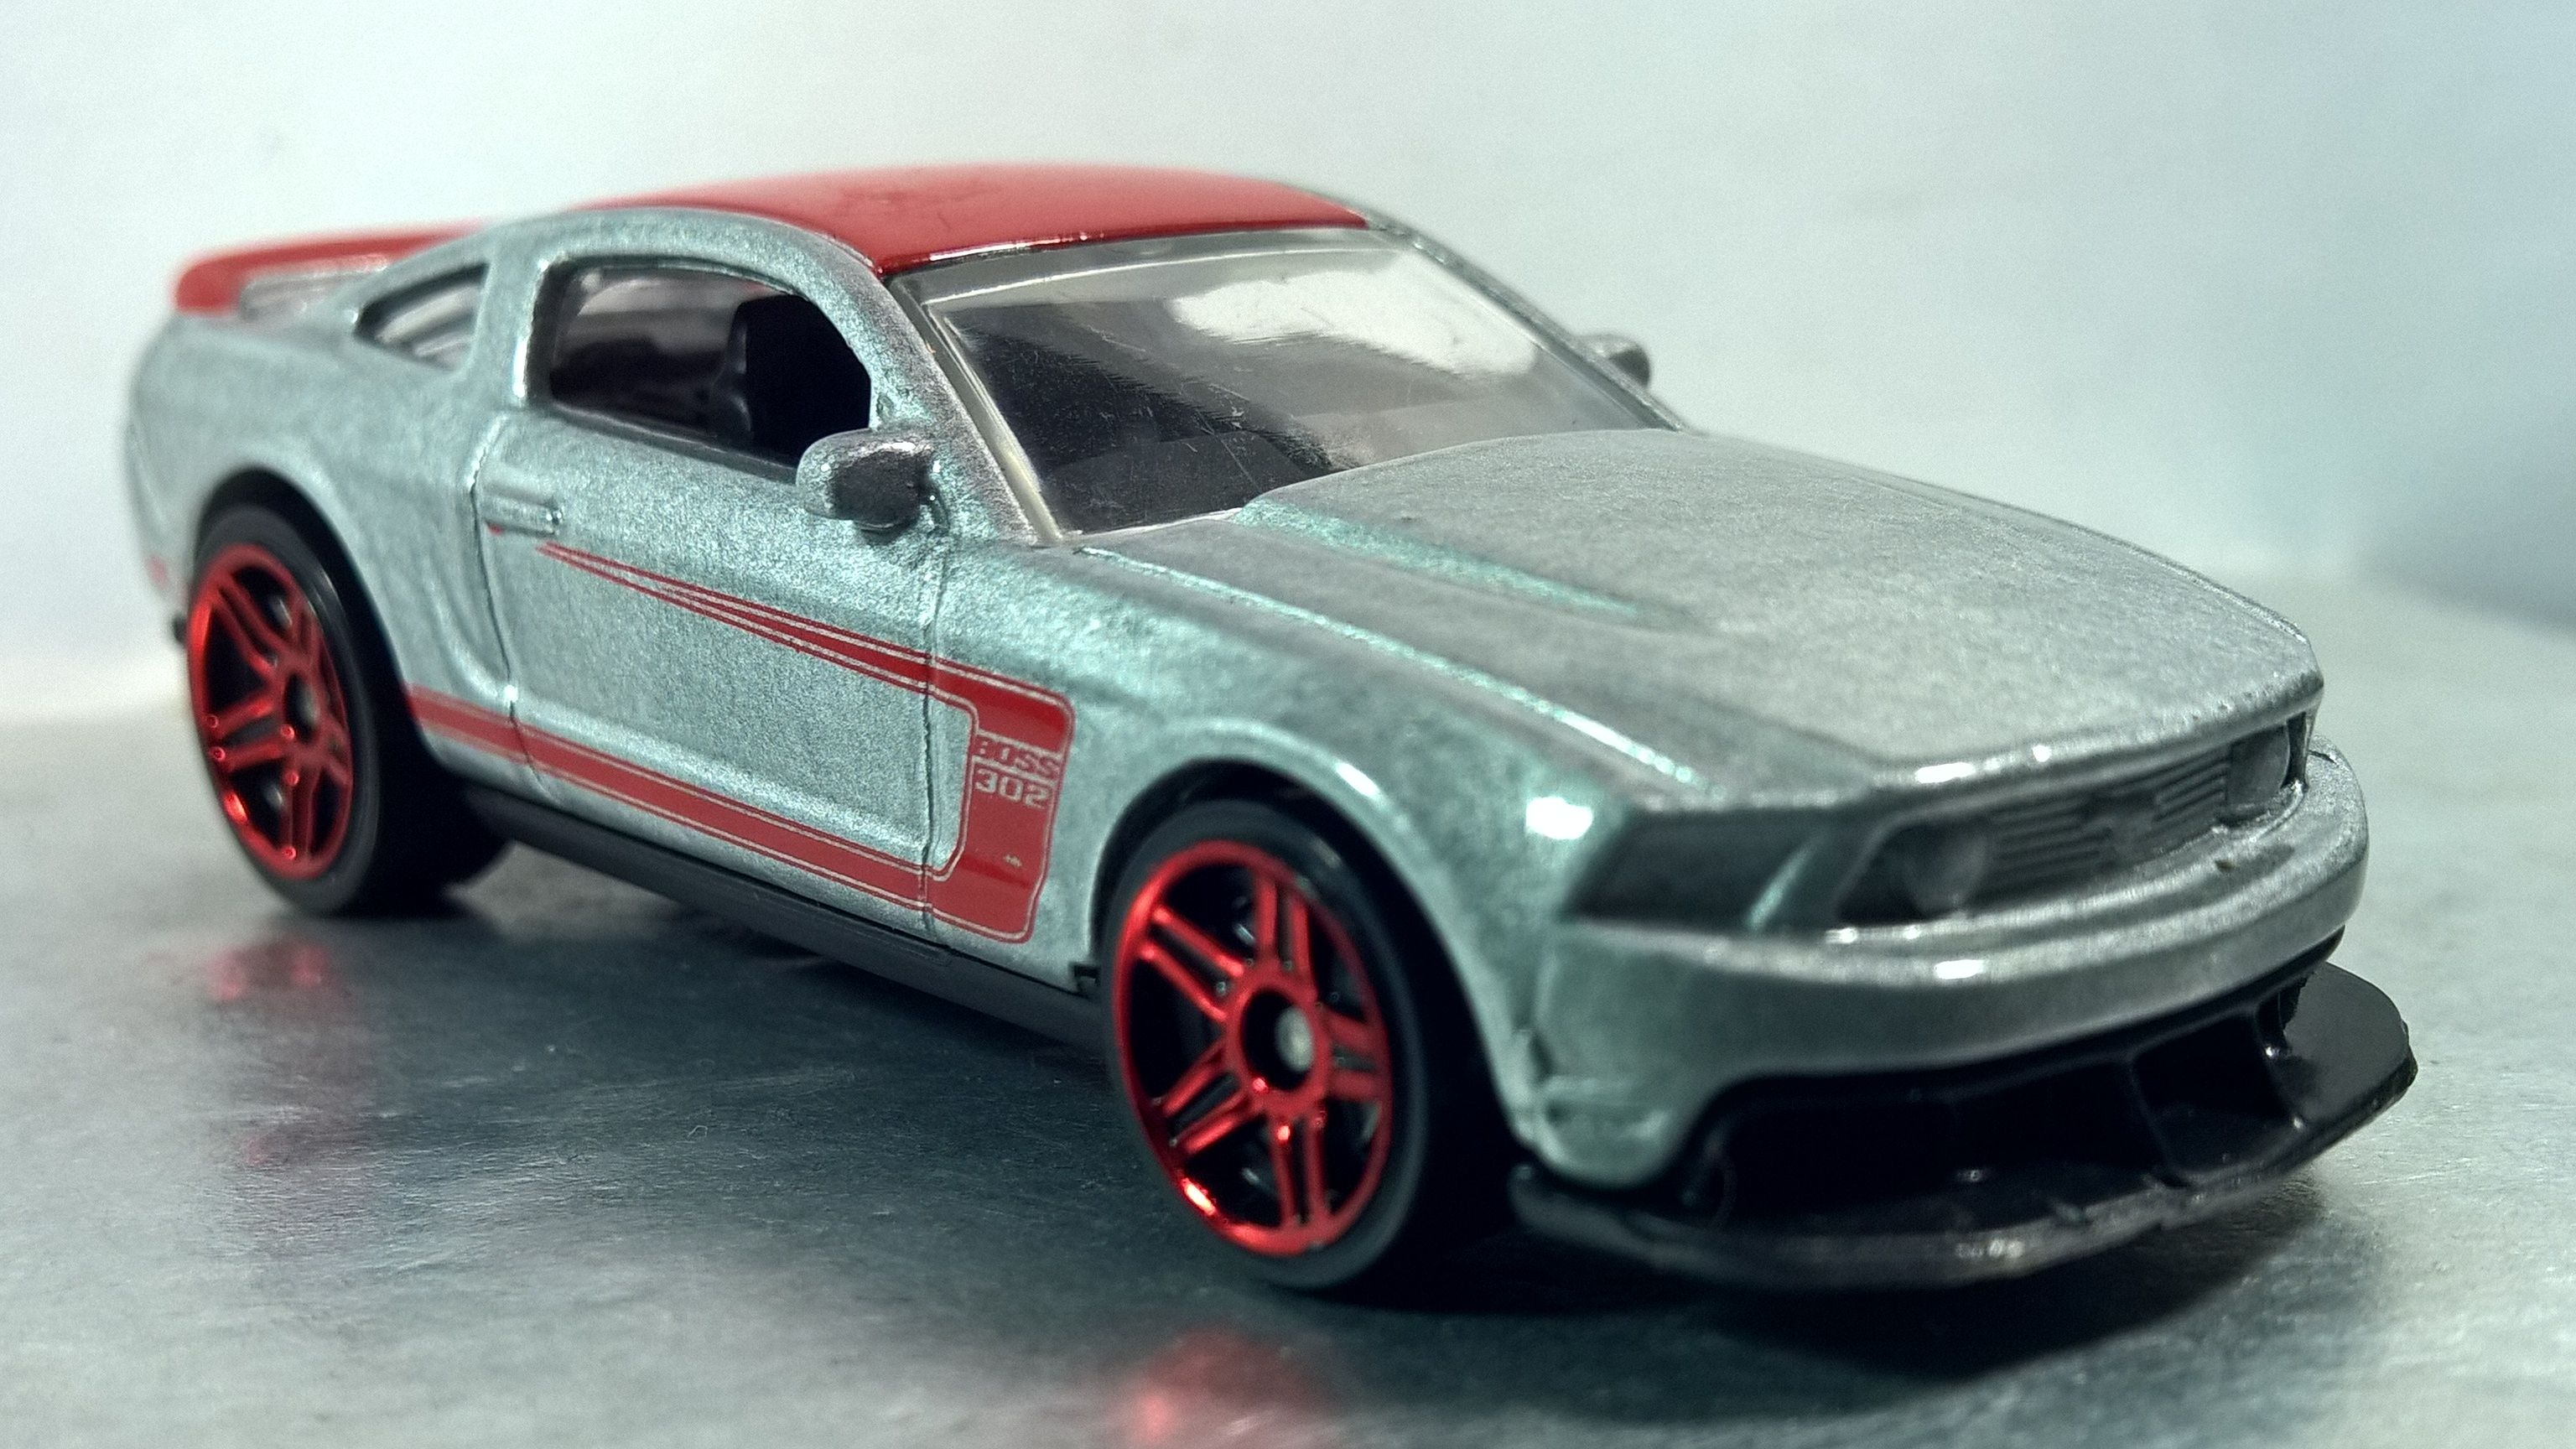 12 Mustang Boss 302 Laguna Seca New Models 2012 8 Abrela Cuando Ideas